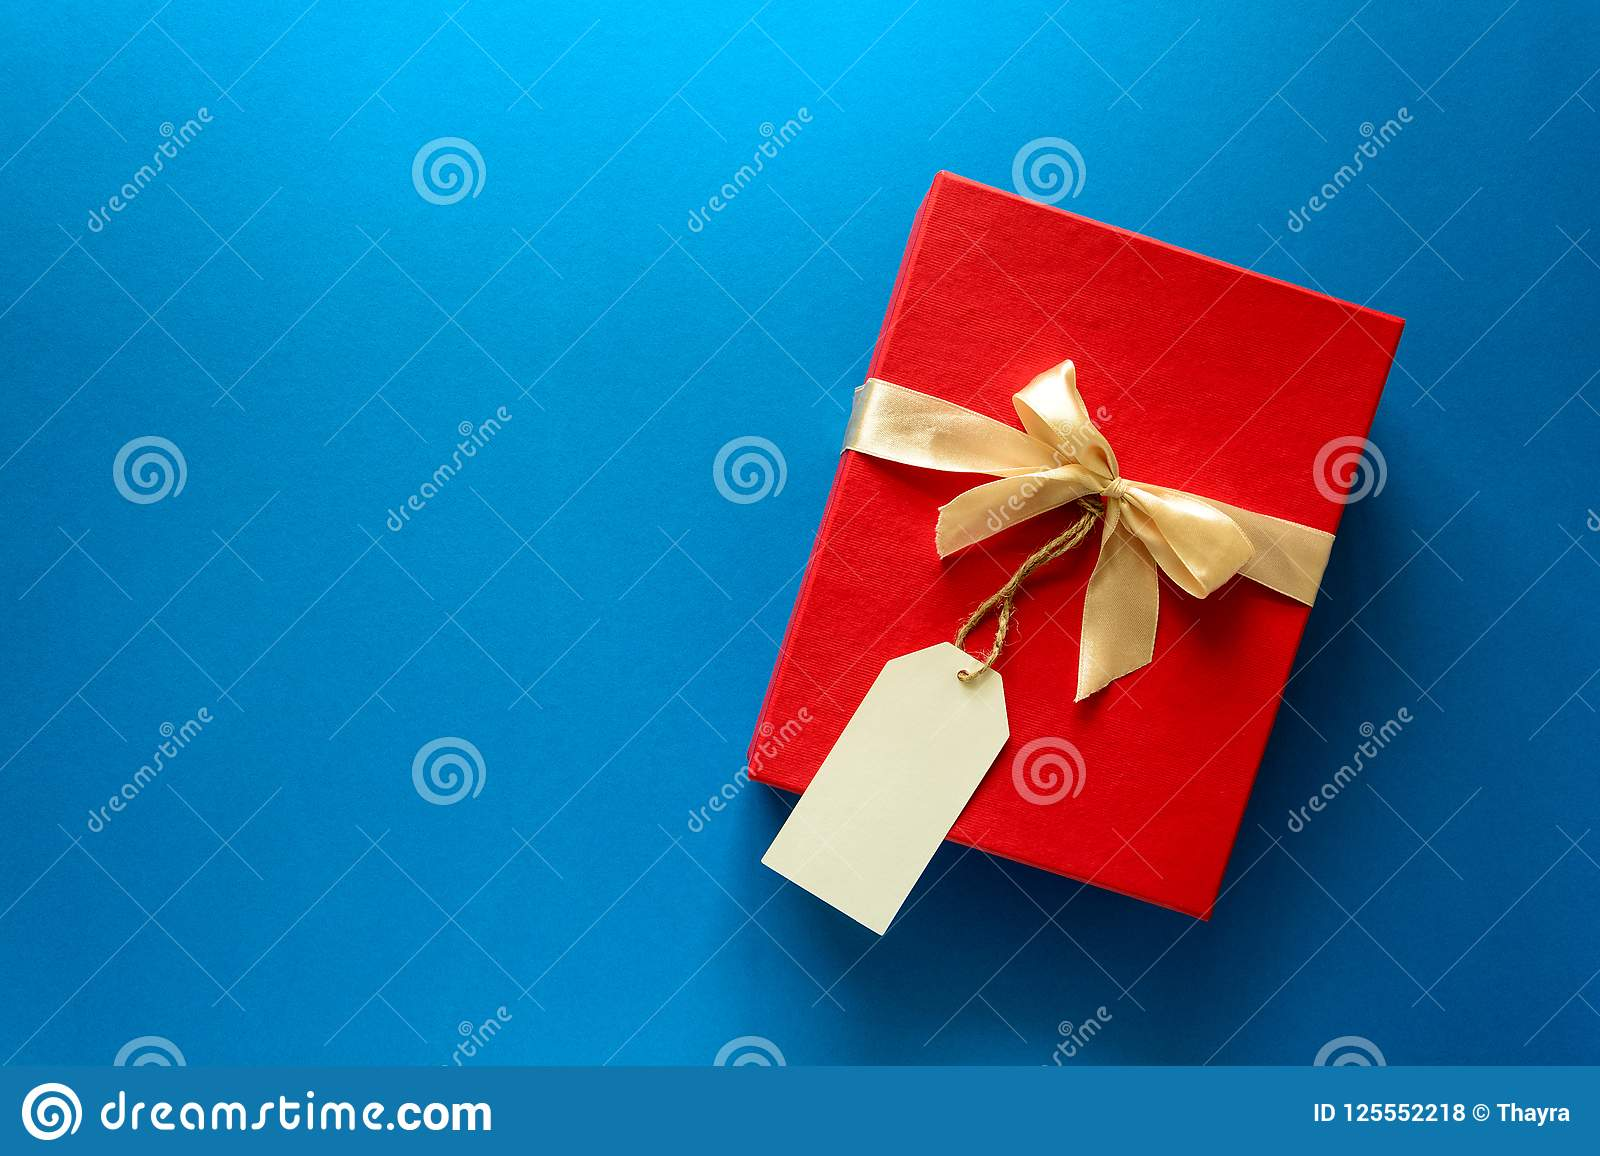 Top view on red Christmas gift box decorated with ribbon on blue paper background.